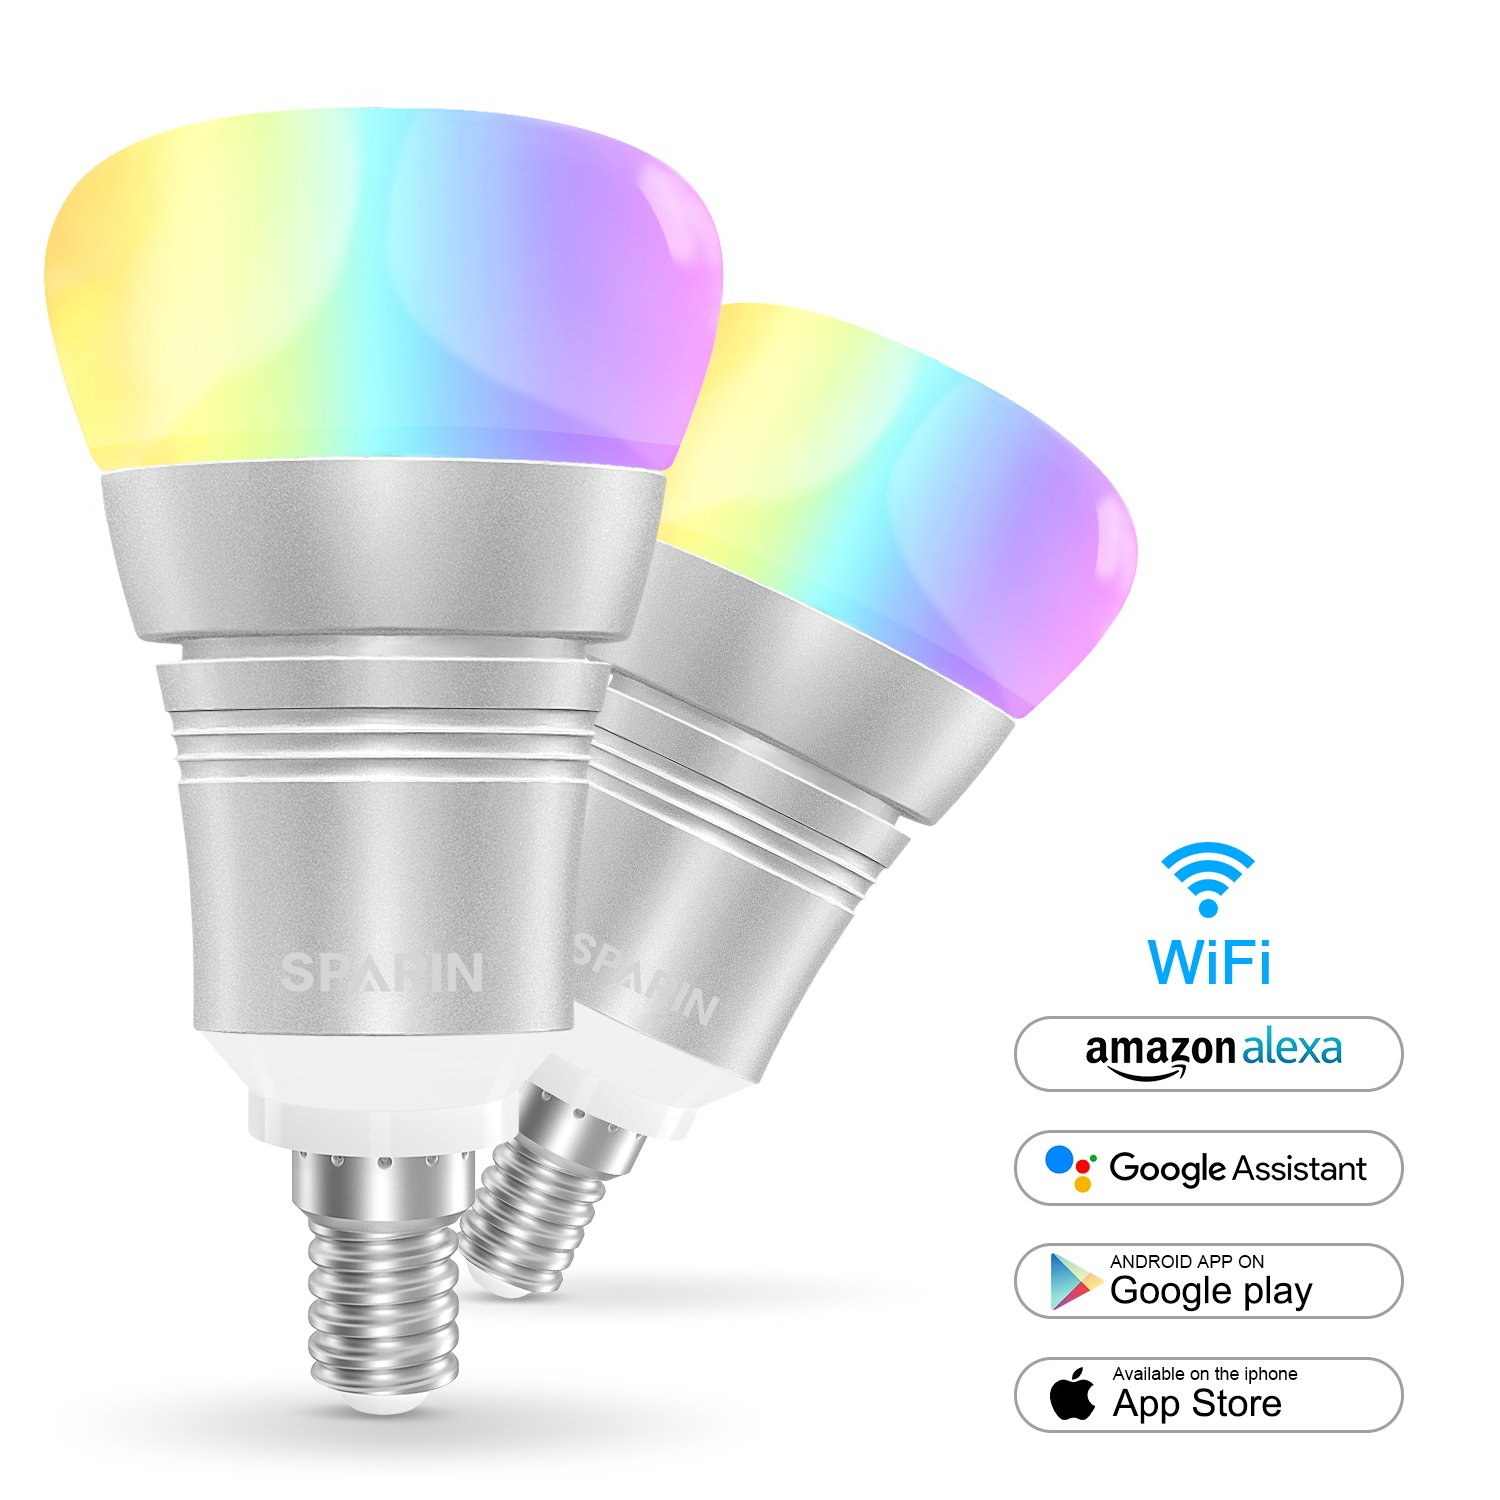 2 Pack Smart Bulb E14 Sparin Color Changing Led Light Build A Circuit Science The Lab Small Edison Screw Candle Bulbs Mood That Compatible With Alexa Google